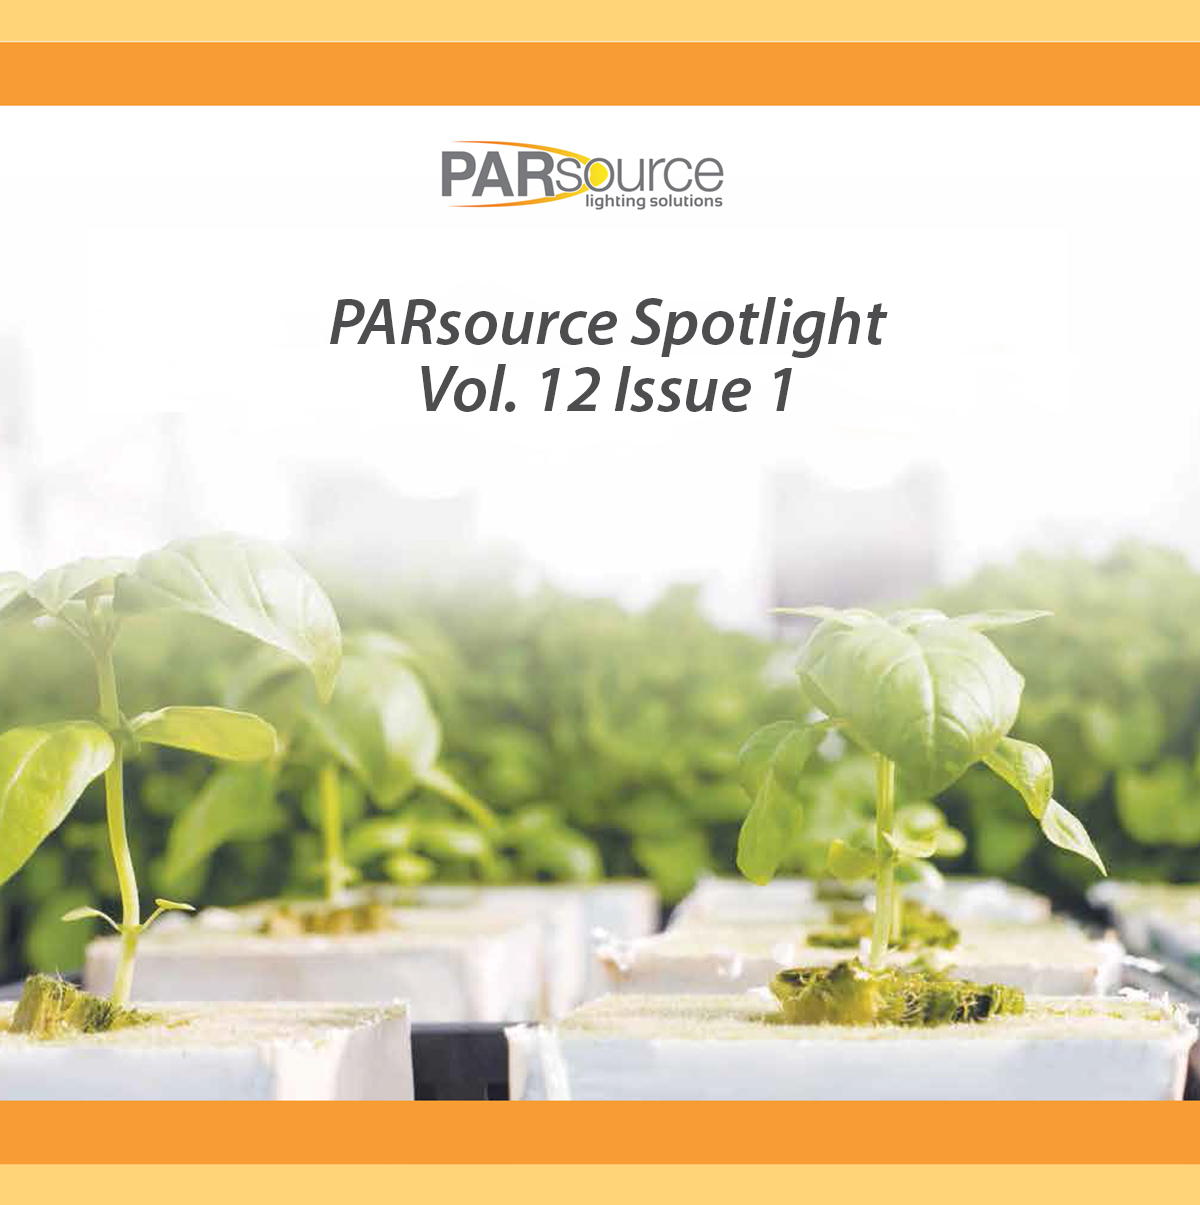 1 Spotlight Parsource Issue Issue Parsource Vol12 Spotlight Vol12 Parsource Spotlight 1 rCQxBoeWd